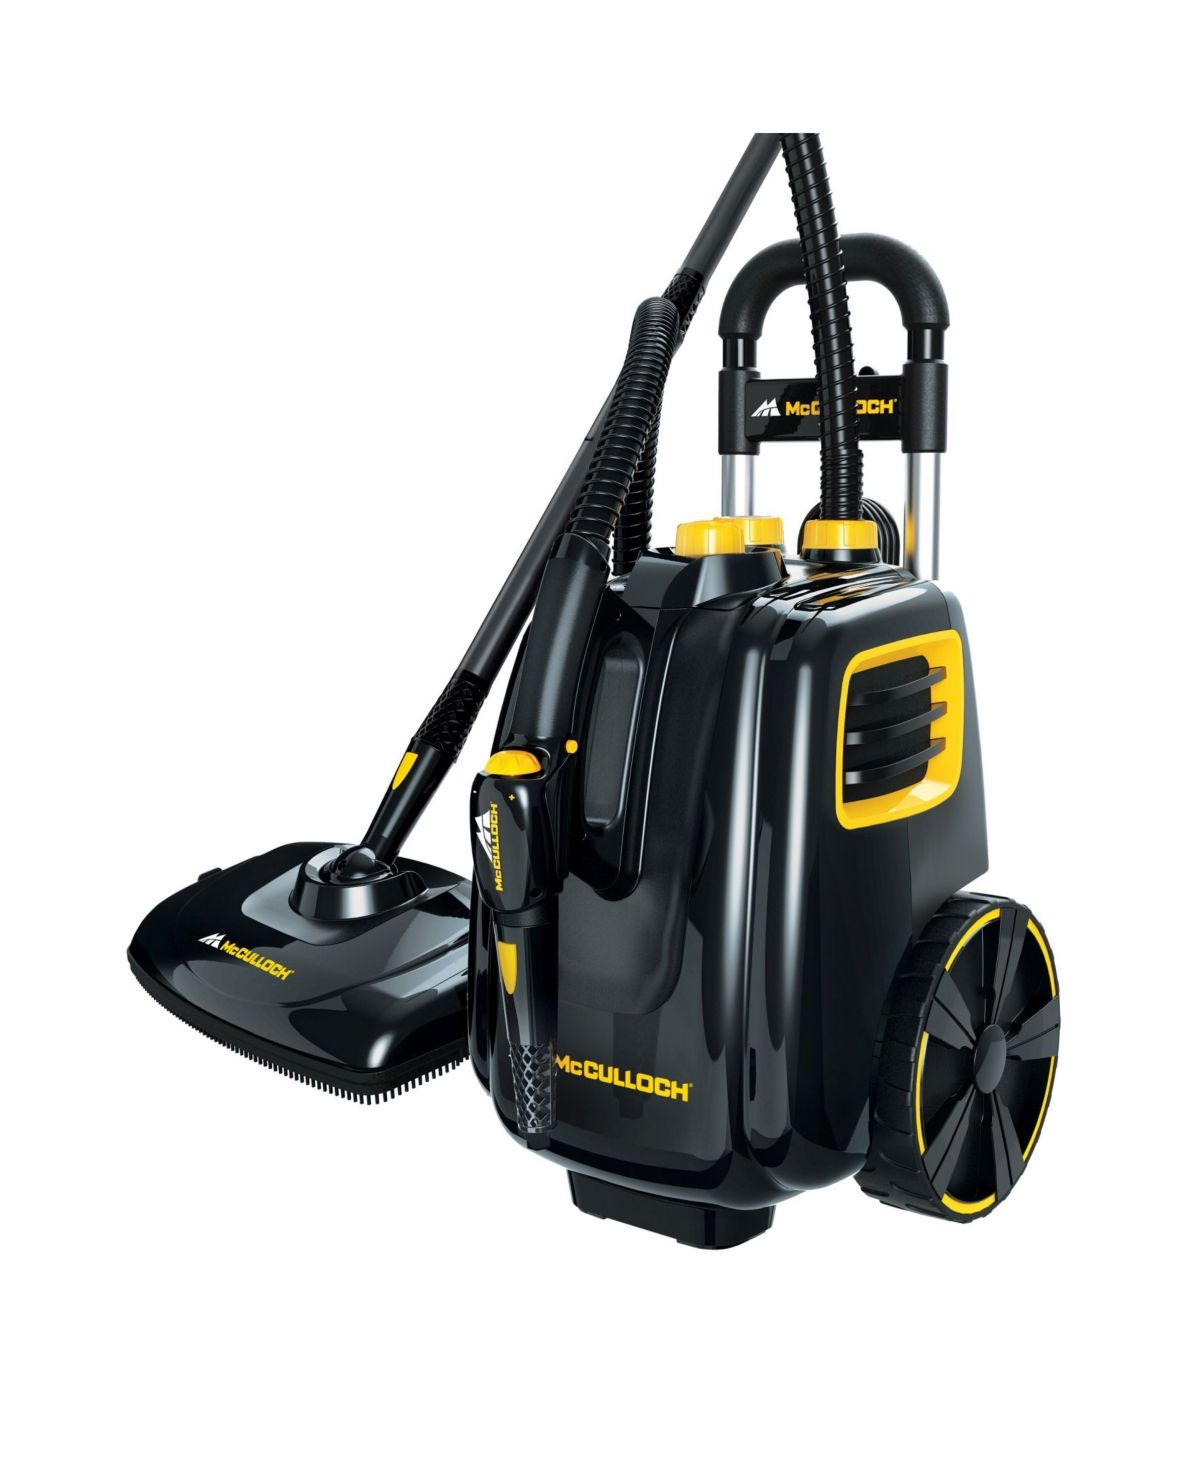 Mcculloch 1385 Deluxe Canister Steam Cleaner 4 Bar Multi In 2020 Steam Cleaners Versatile Accessories Cleaners